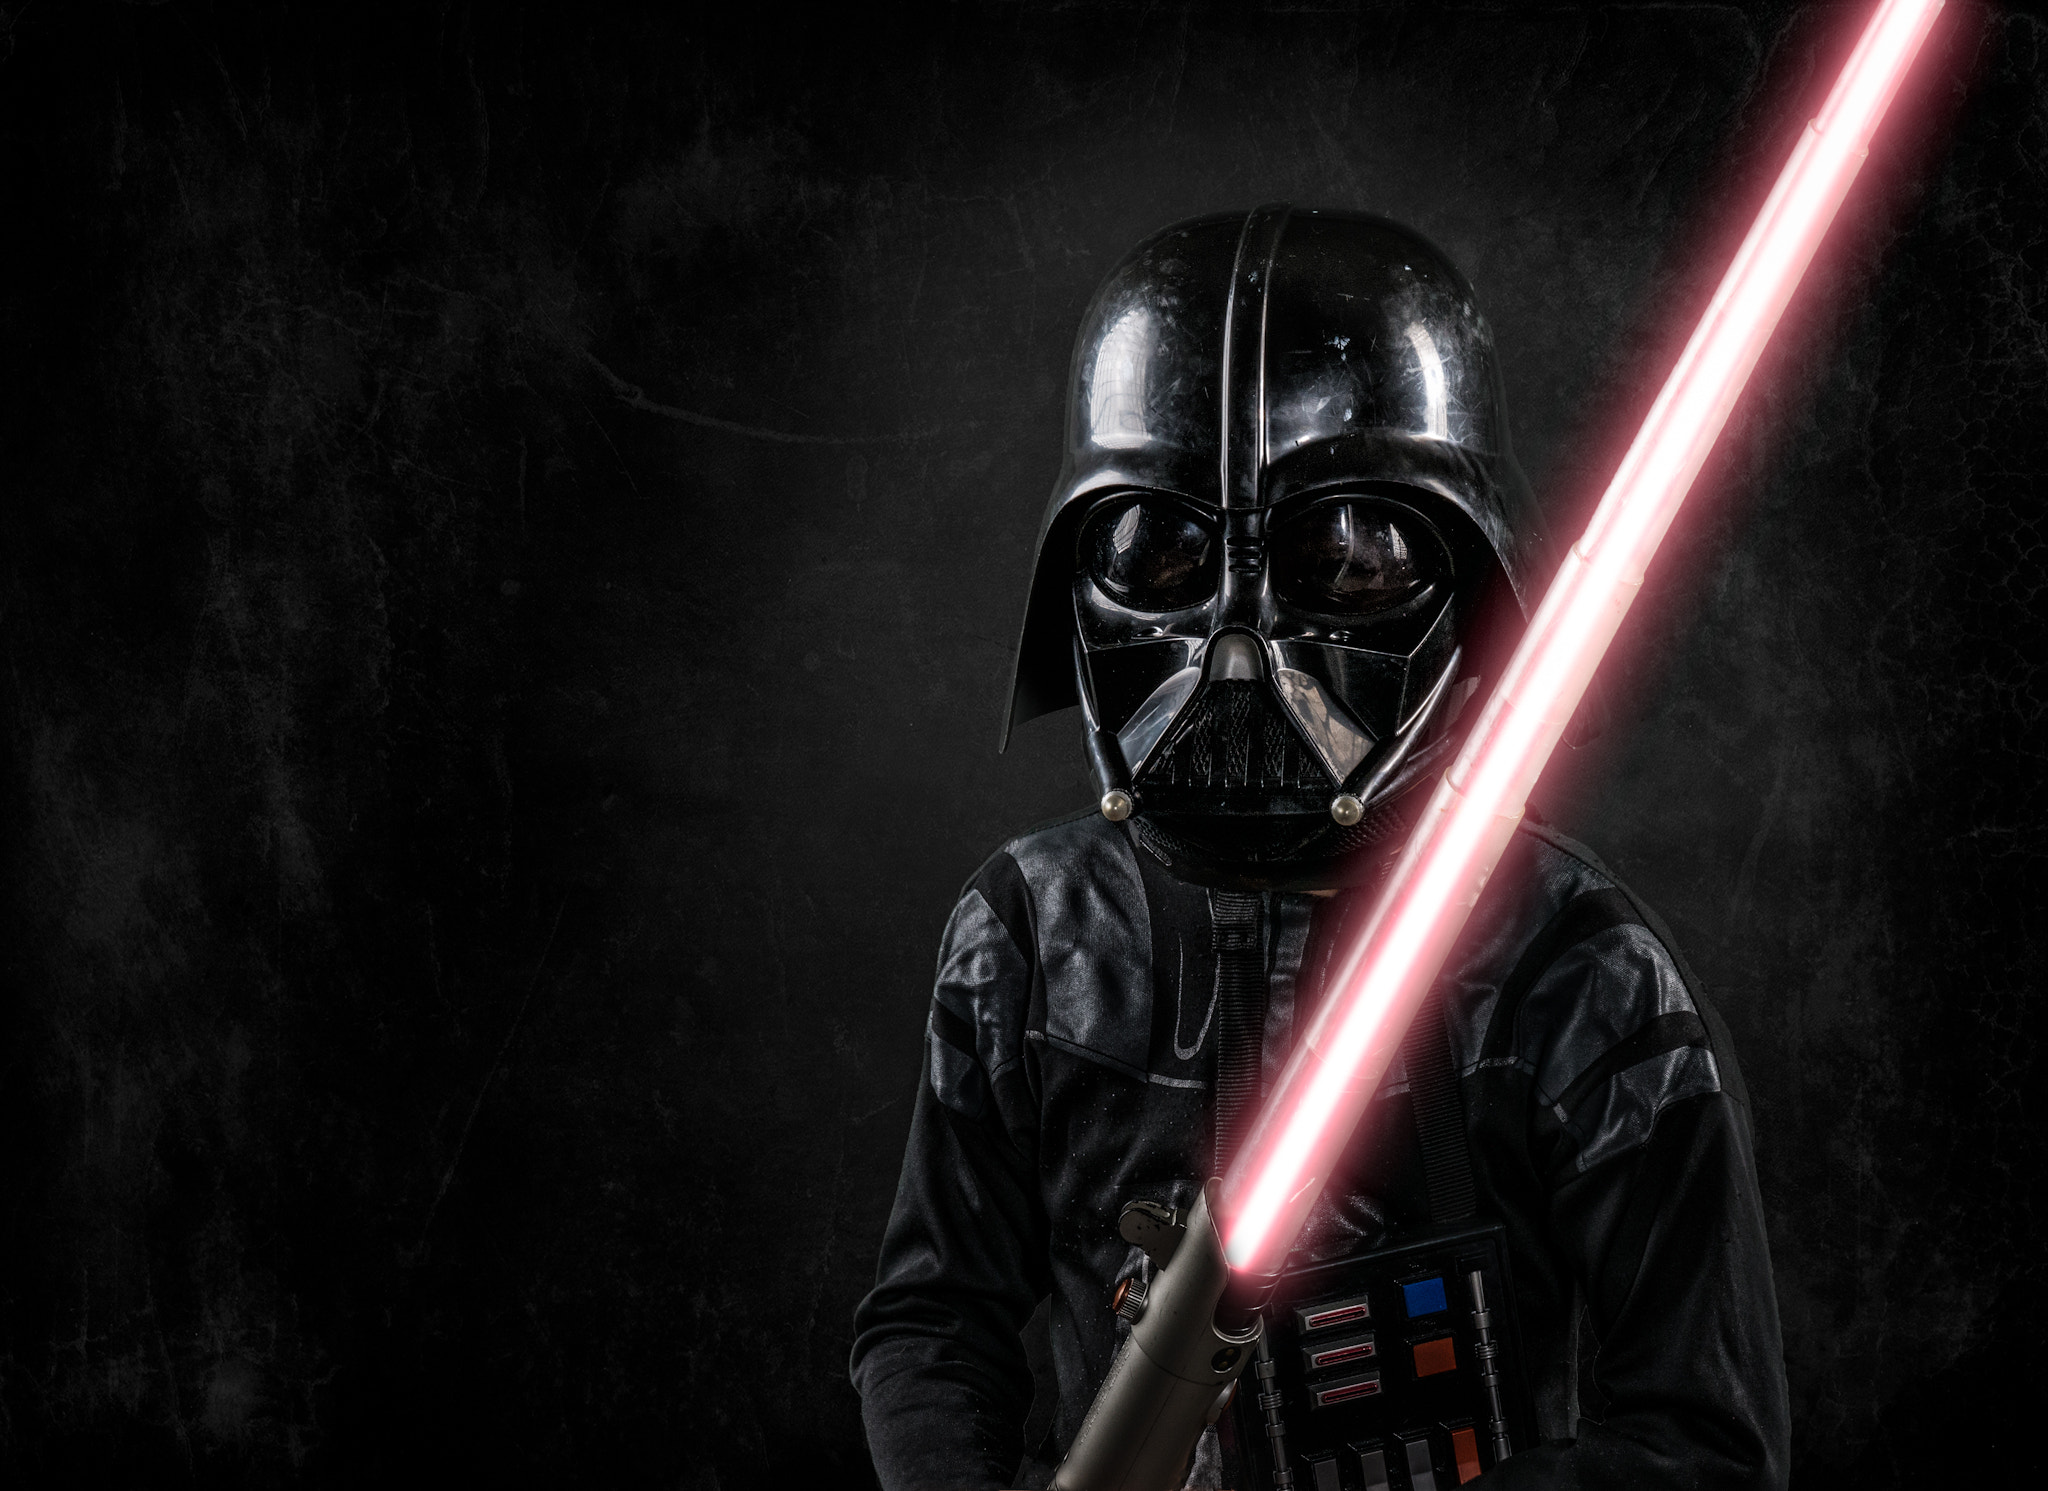 Photograph Darth by Moe Chen on 500px